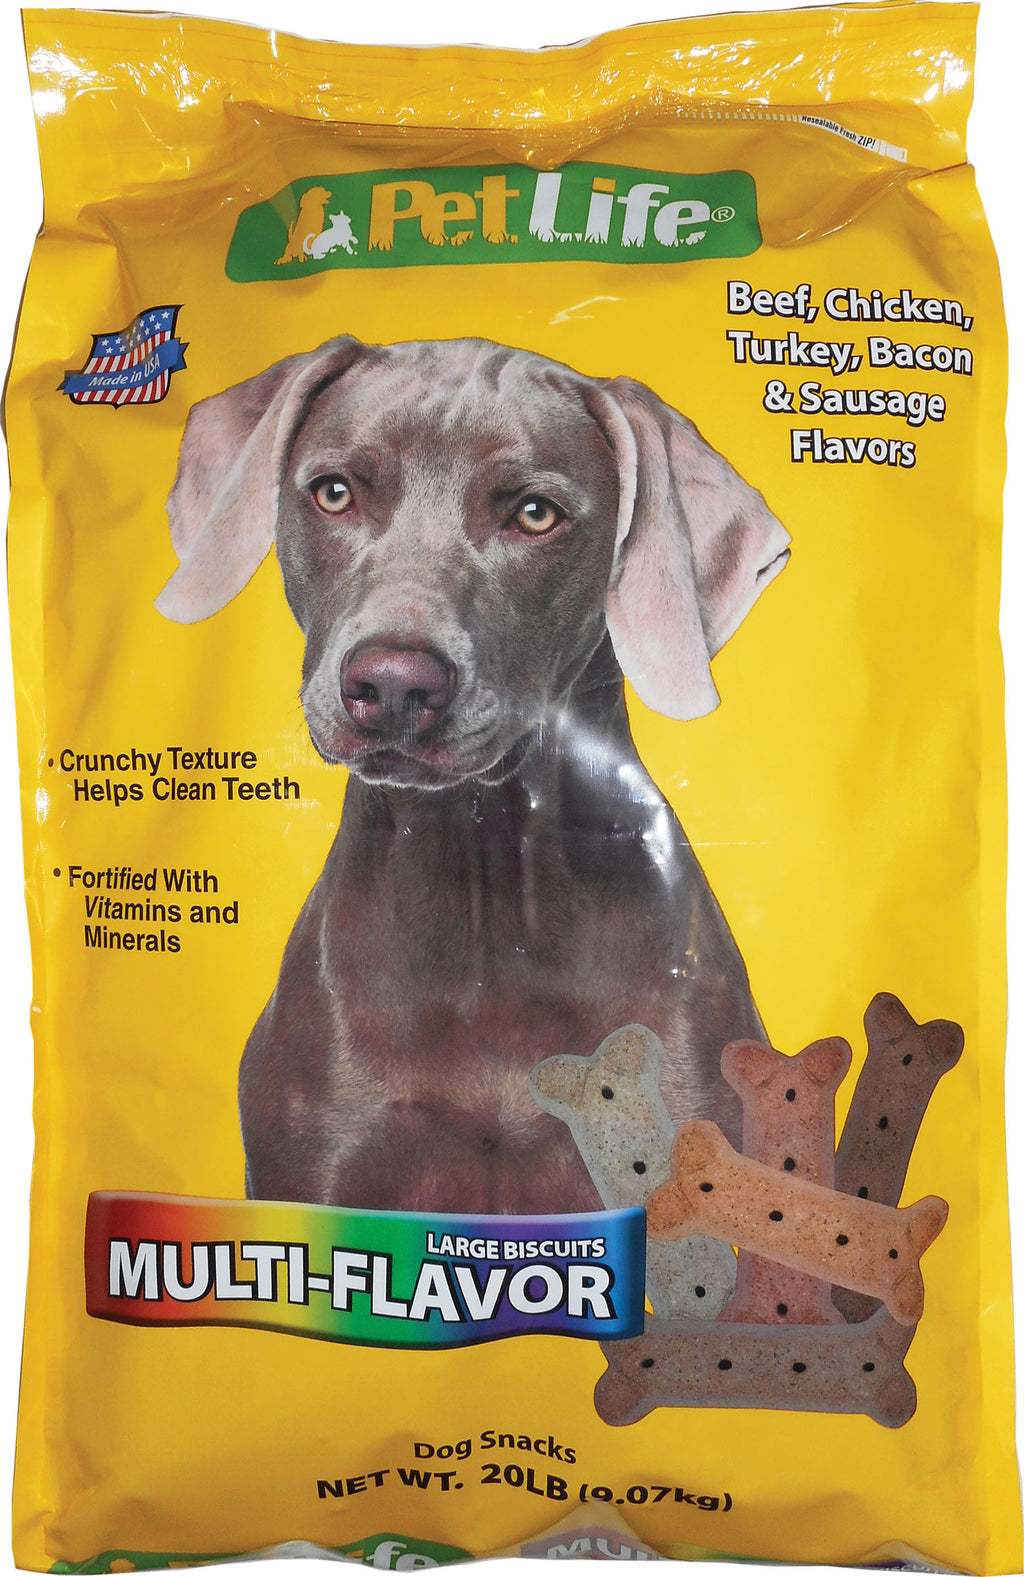 Pet Life Dog Biscuits